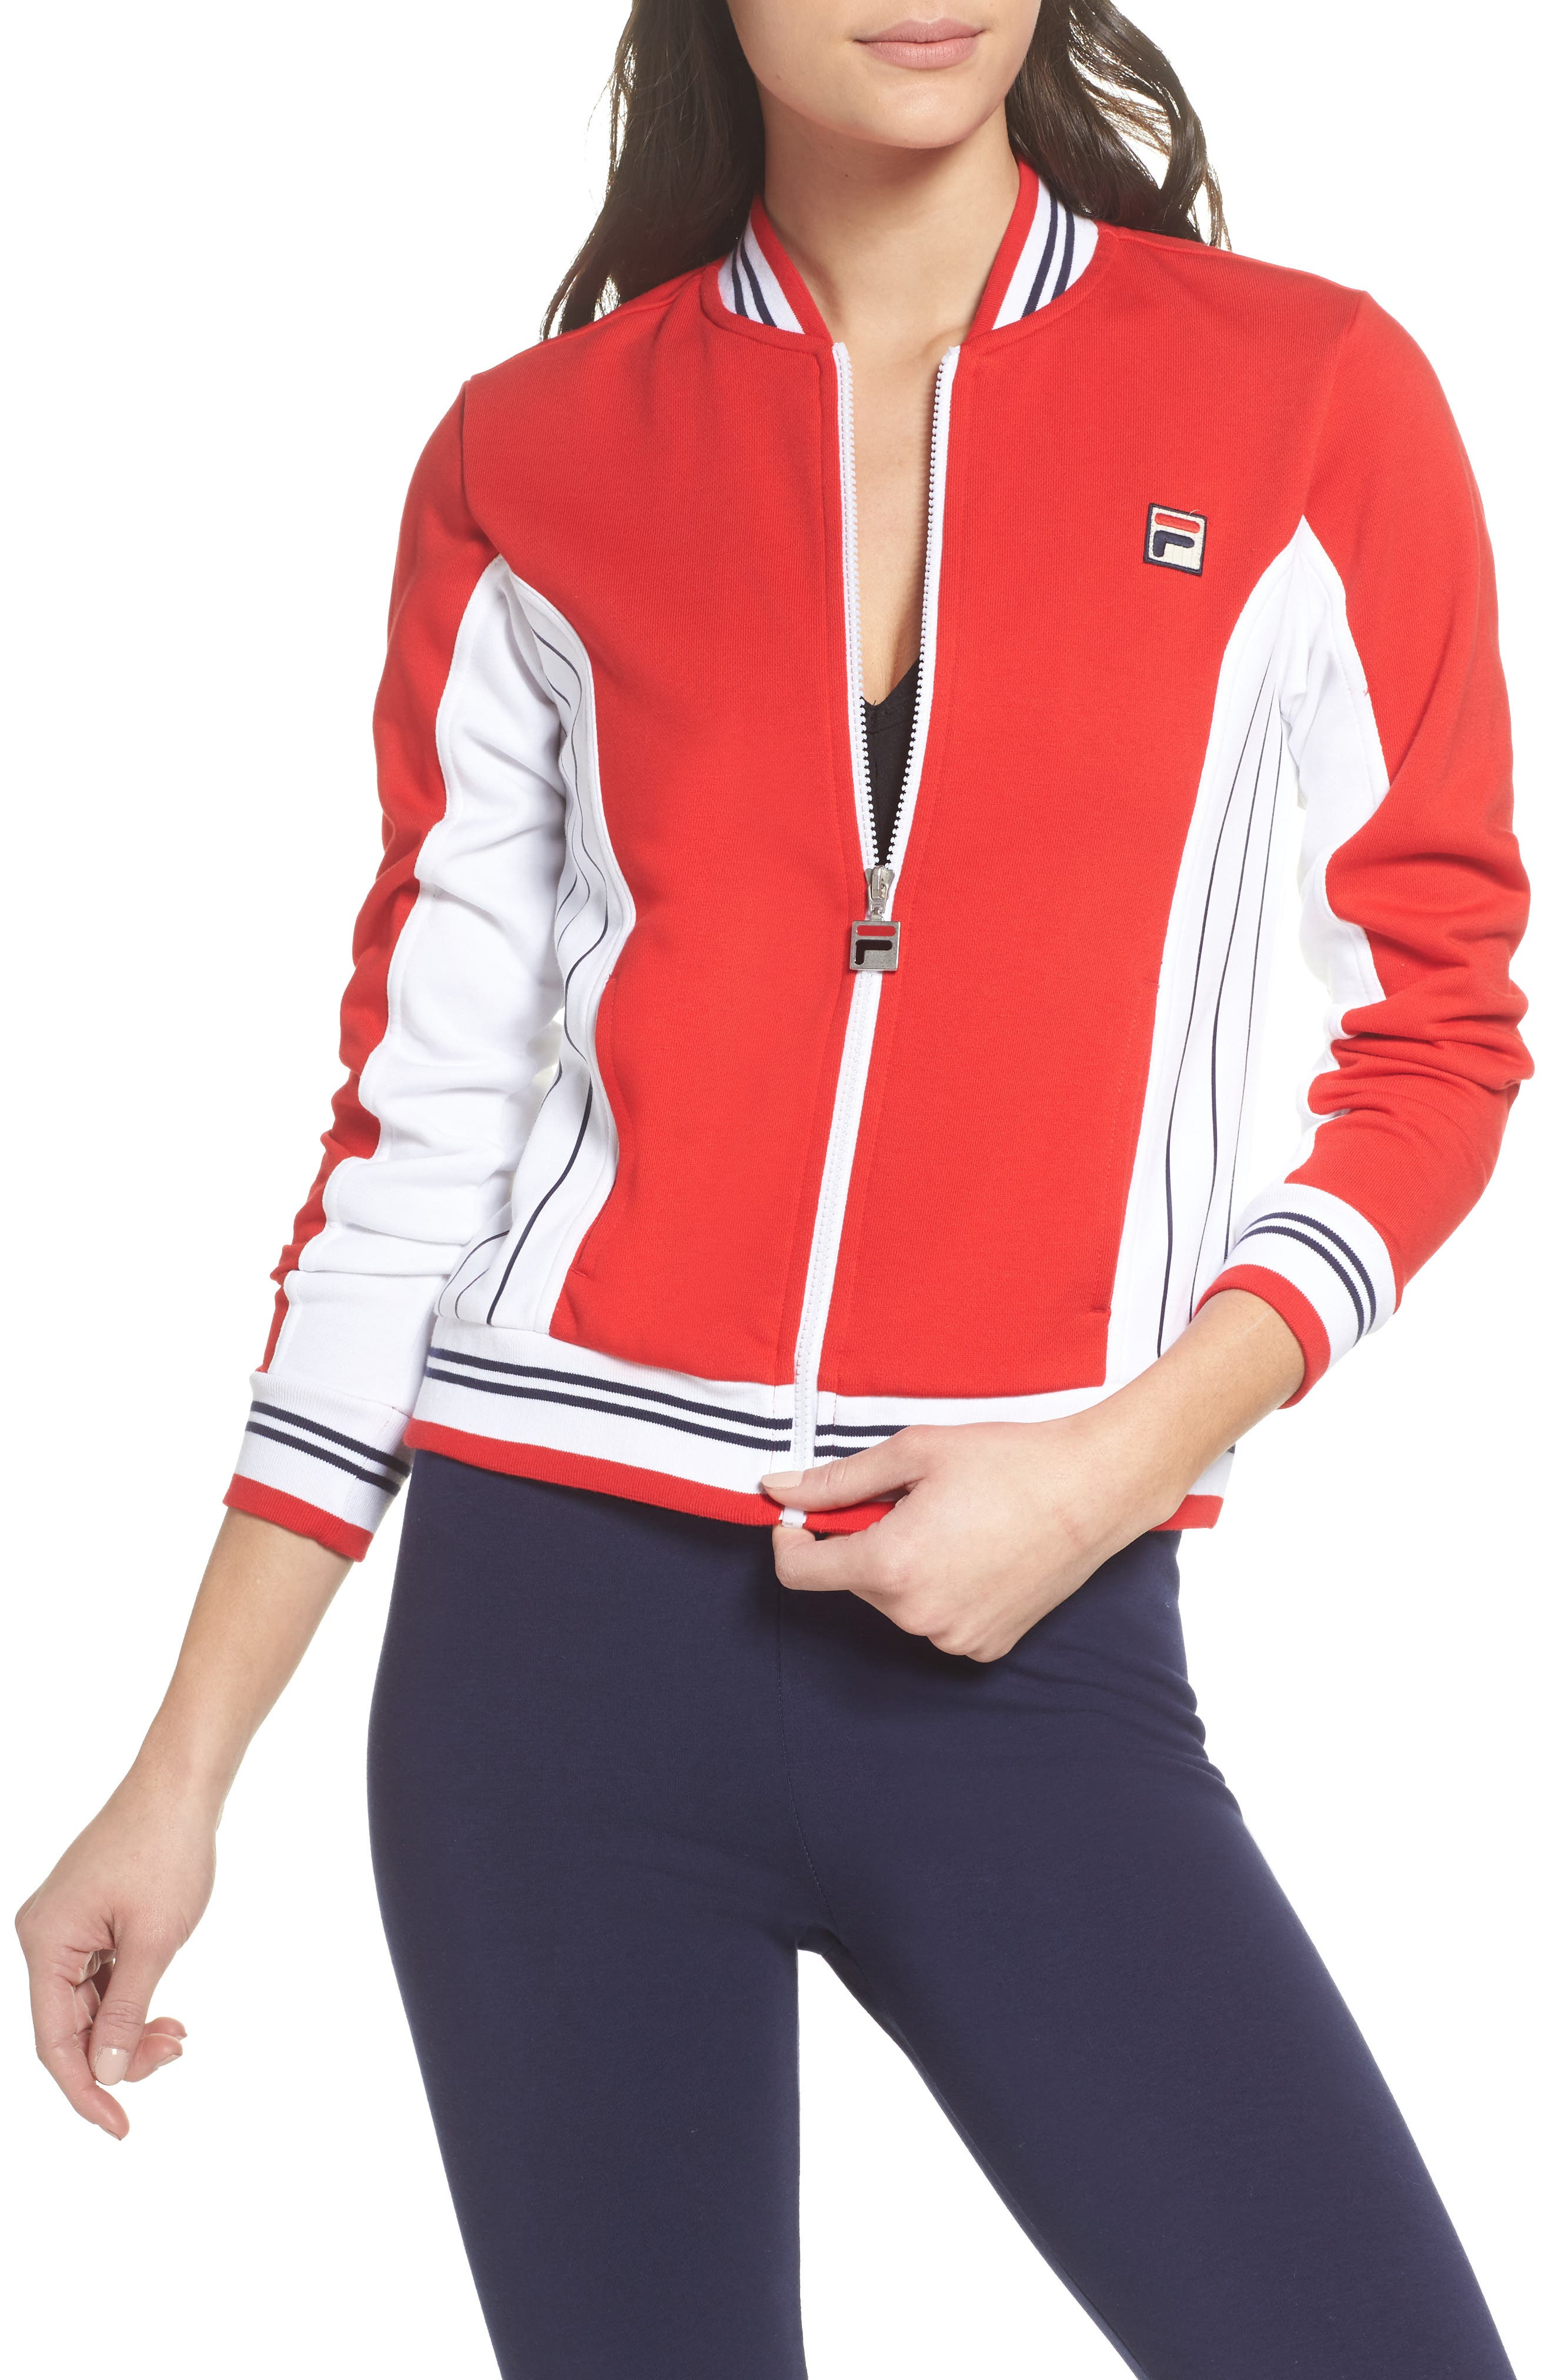 Settanta II Jacket,                         Main,                         color, Chinese Red/ White/ Navy